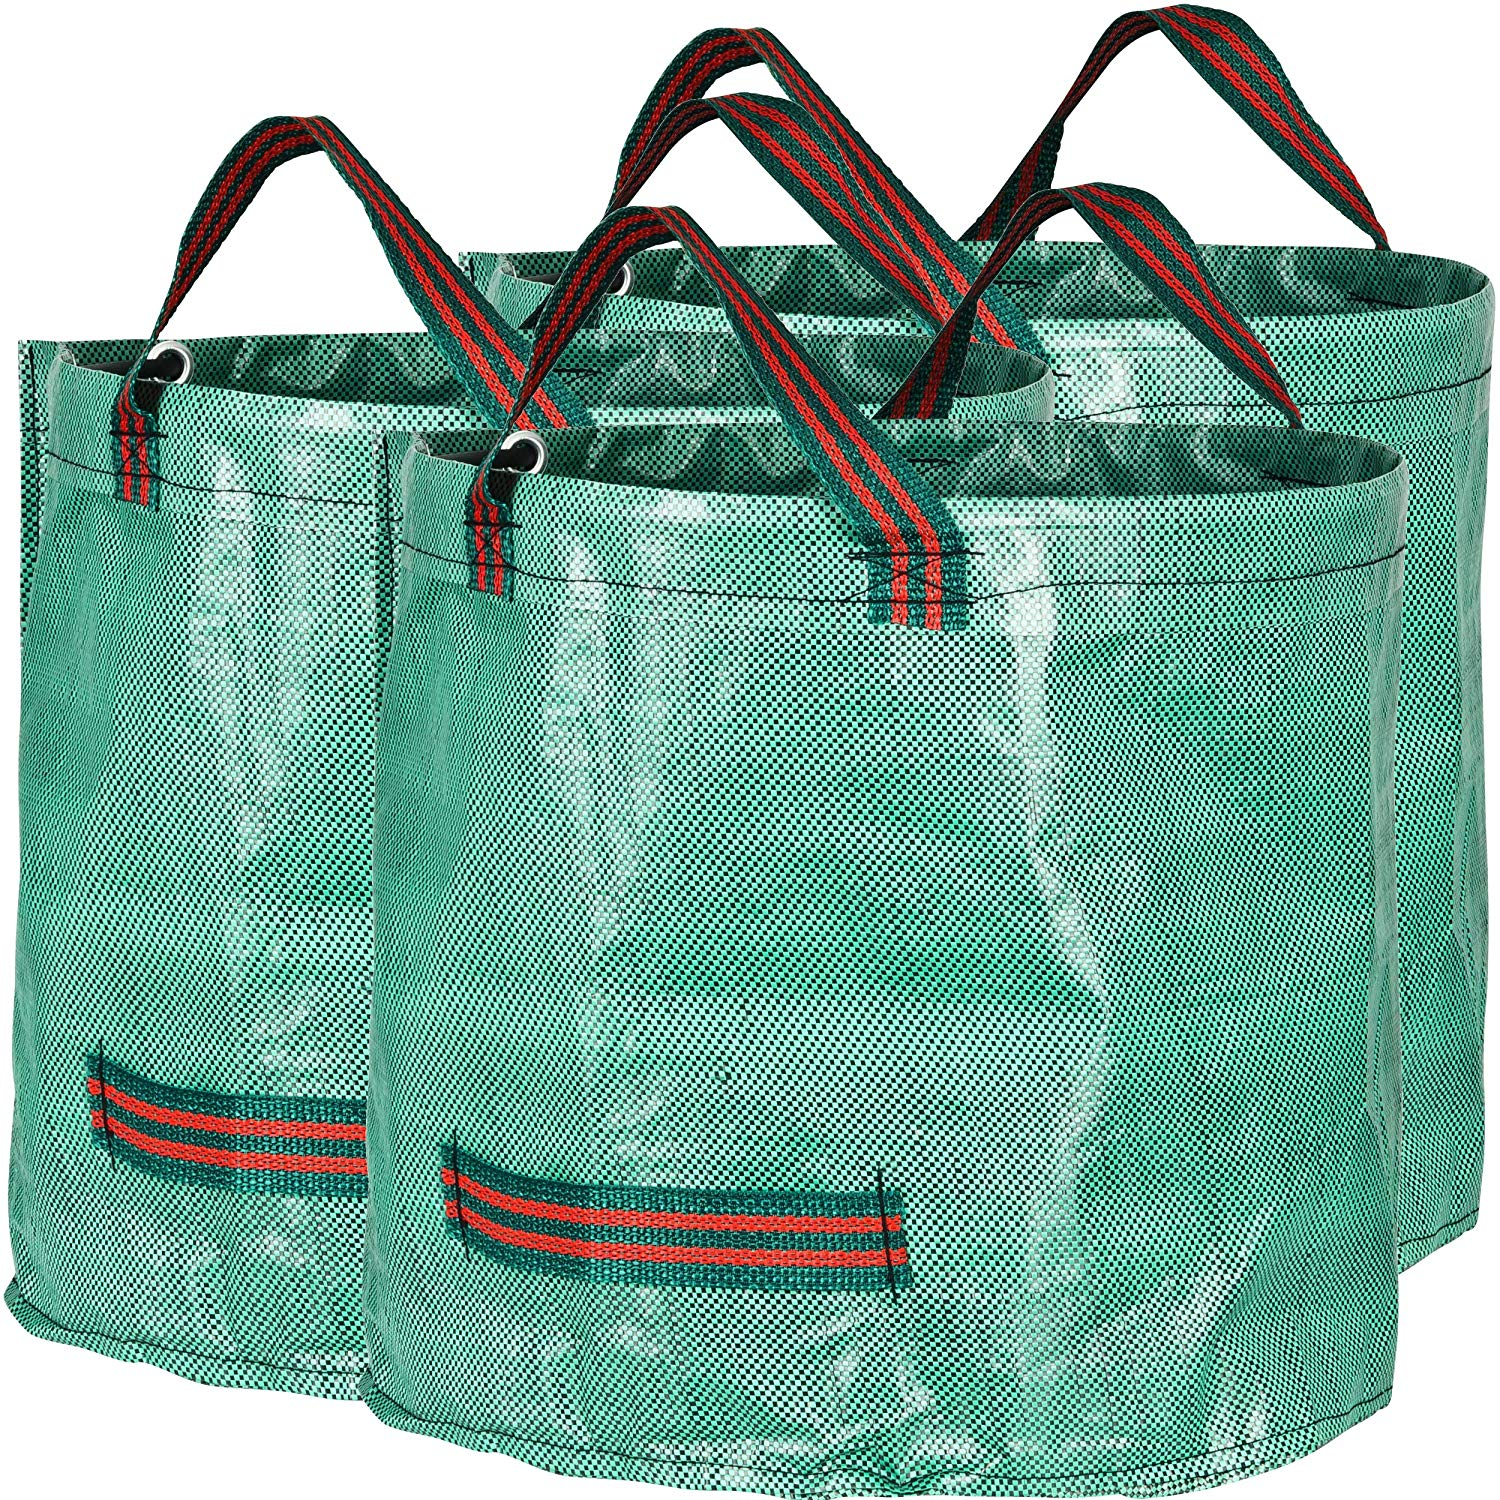 3-Pack 72 Gallons Garden Waste Bags (H30, D26 inches)